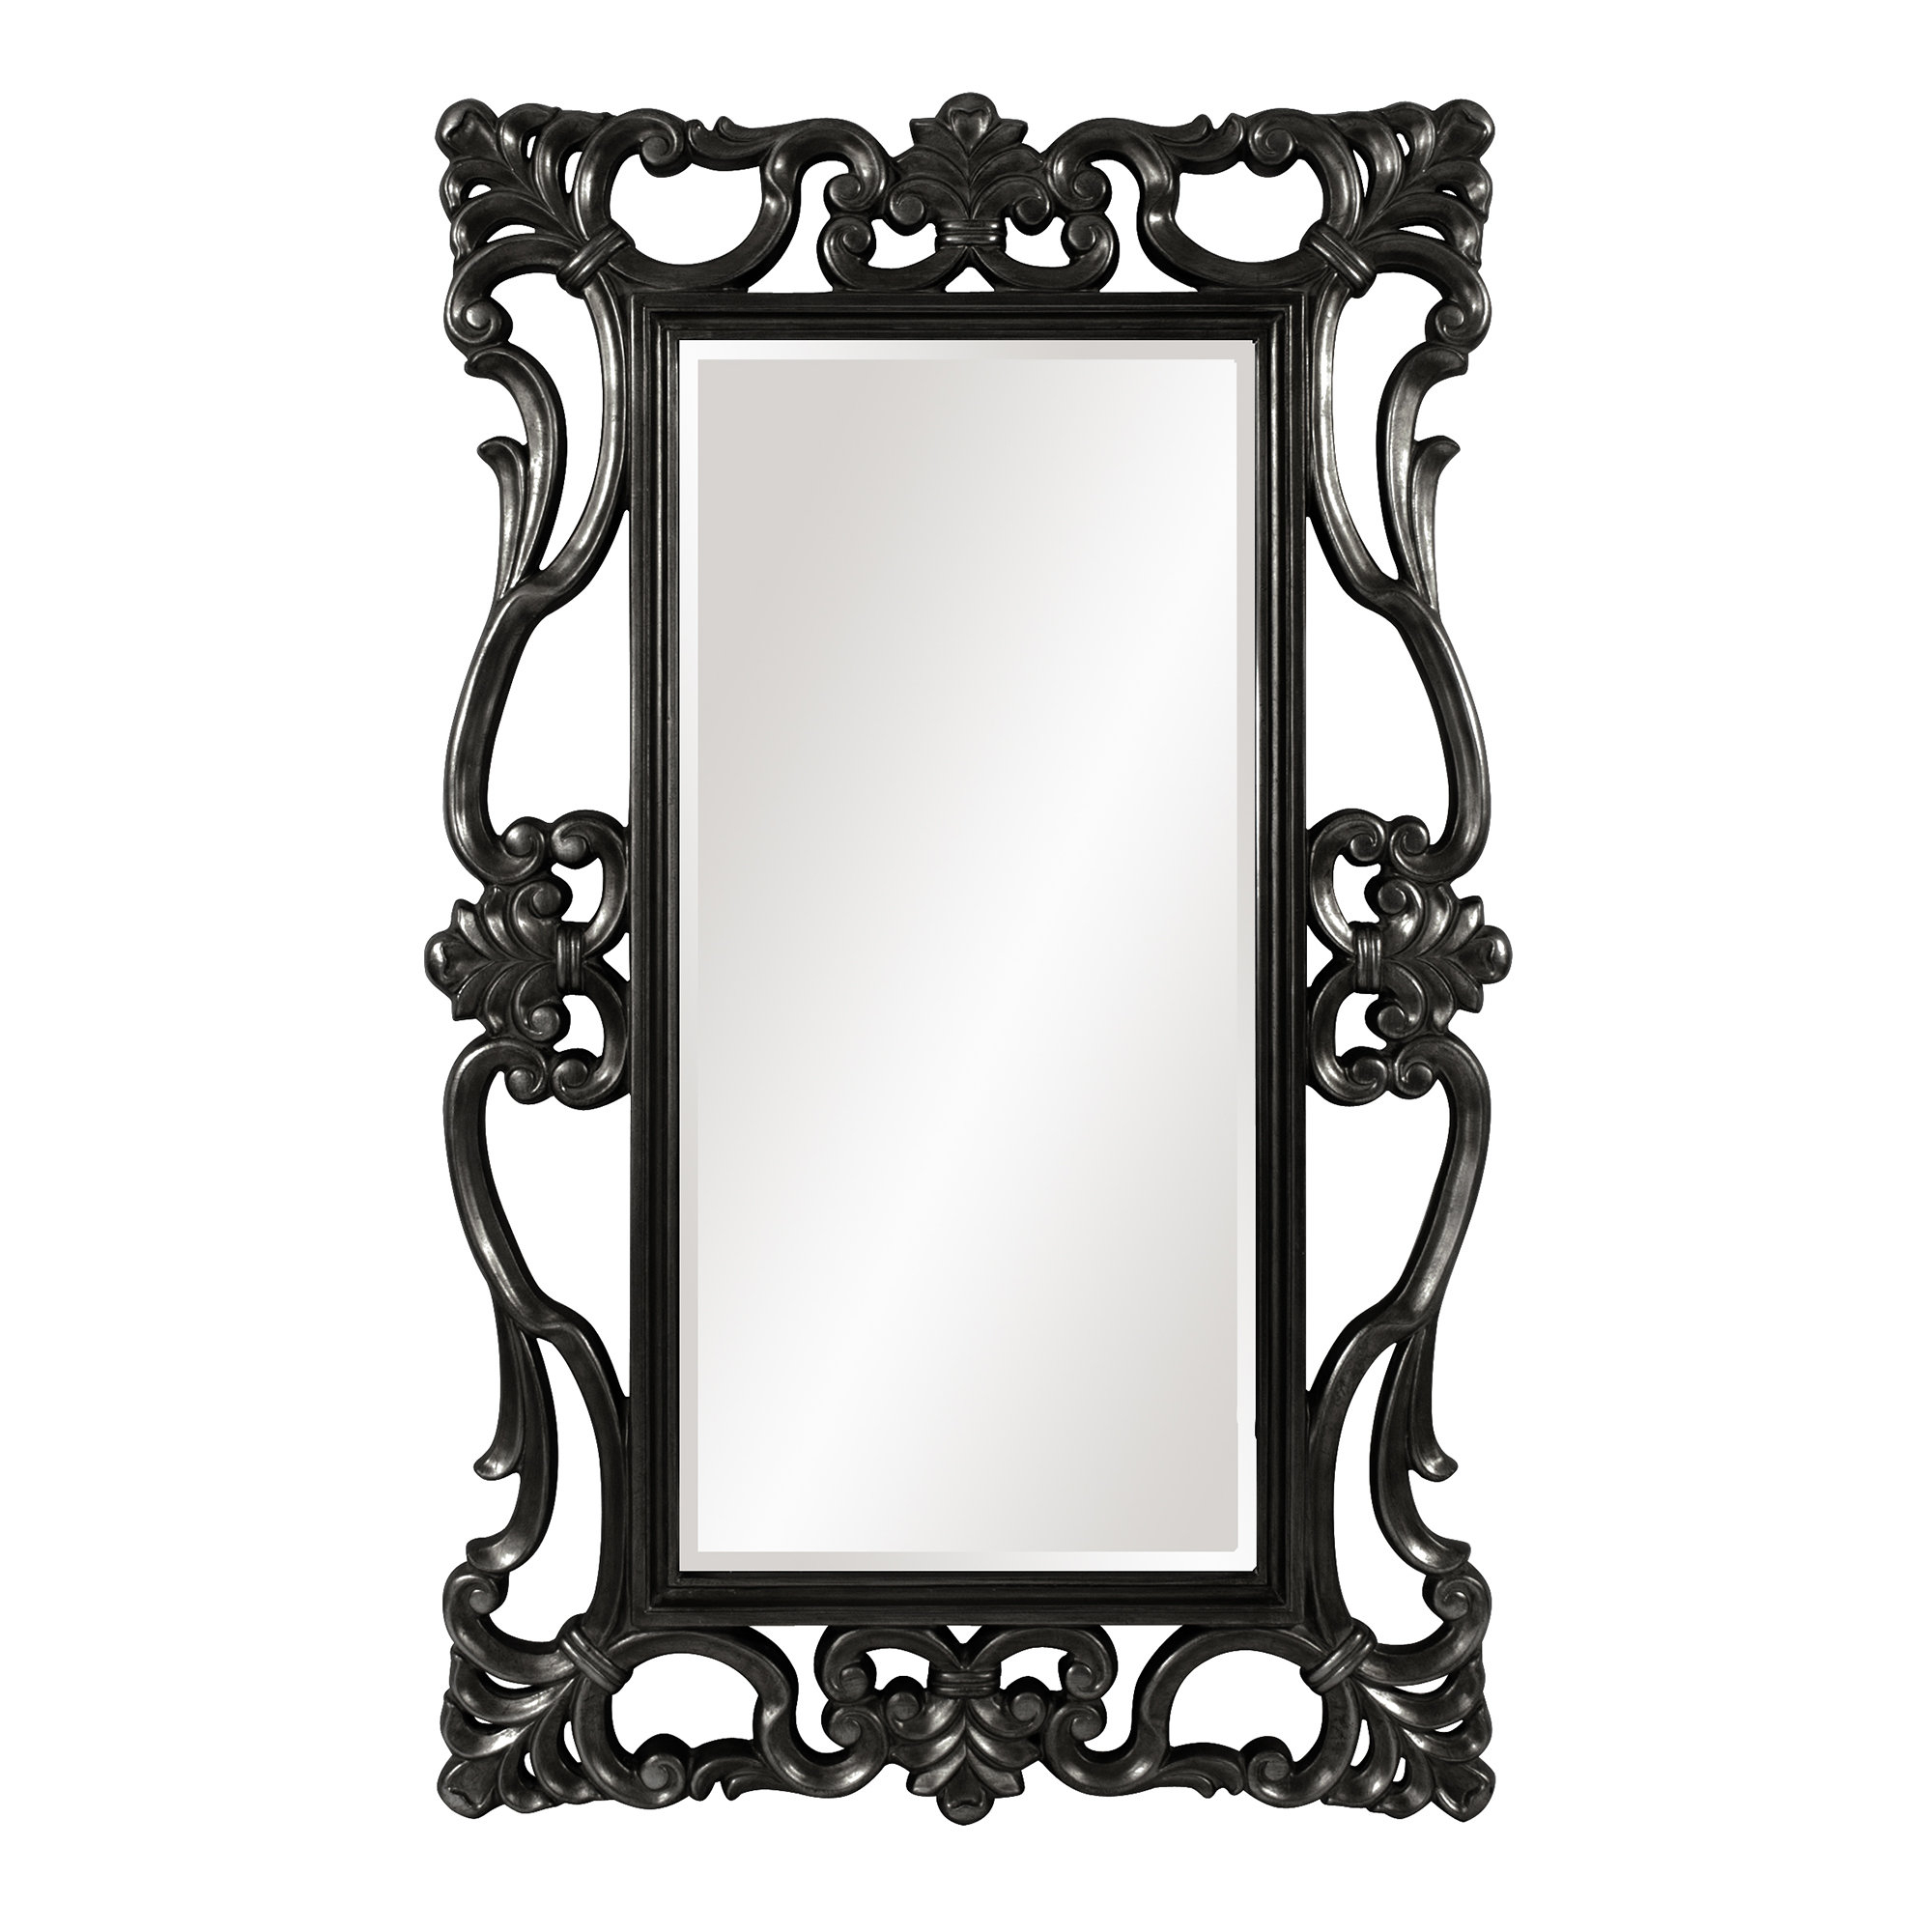 Most Recent Large Rectangular Wall Mirror Throughout Black Rectangle Wall Mirrors (View 19 of 20)